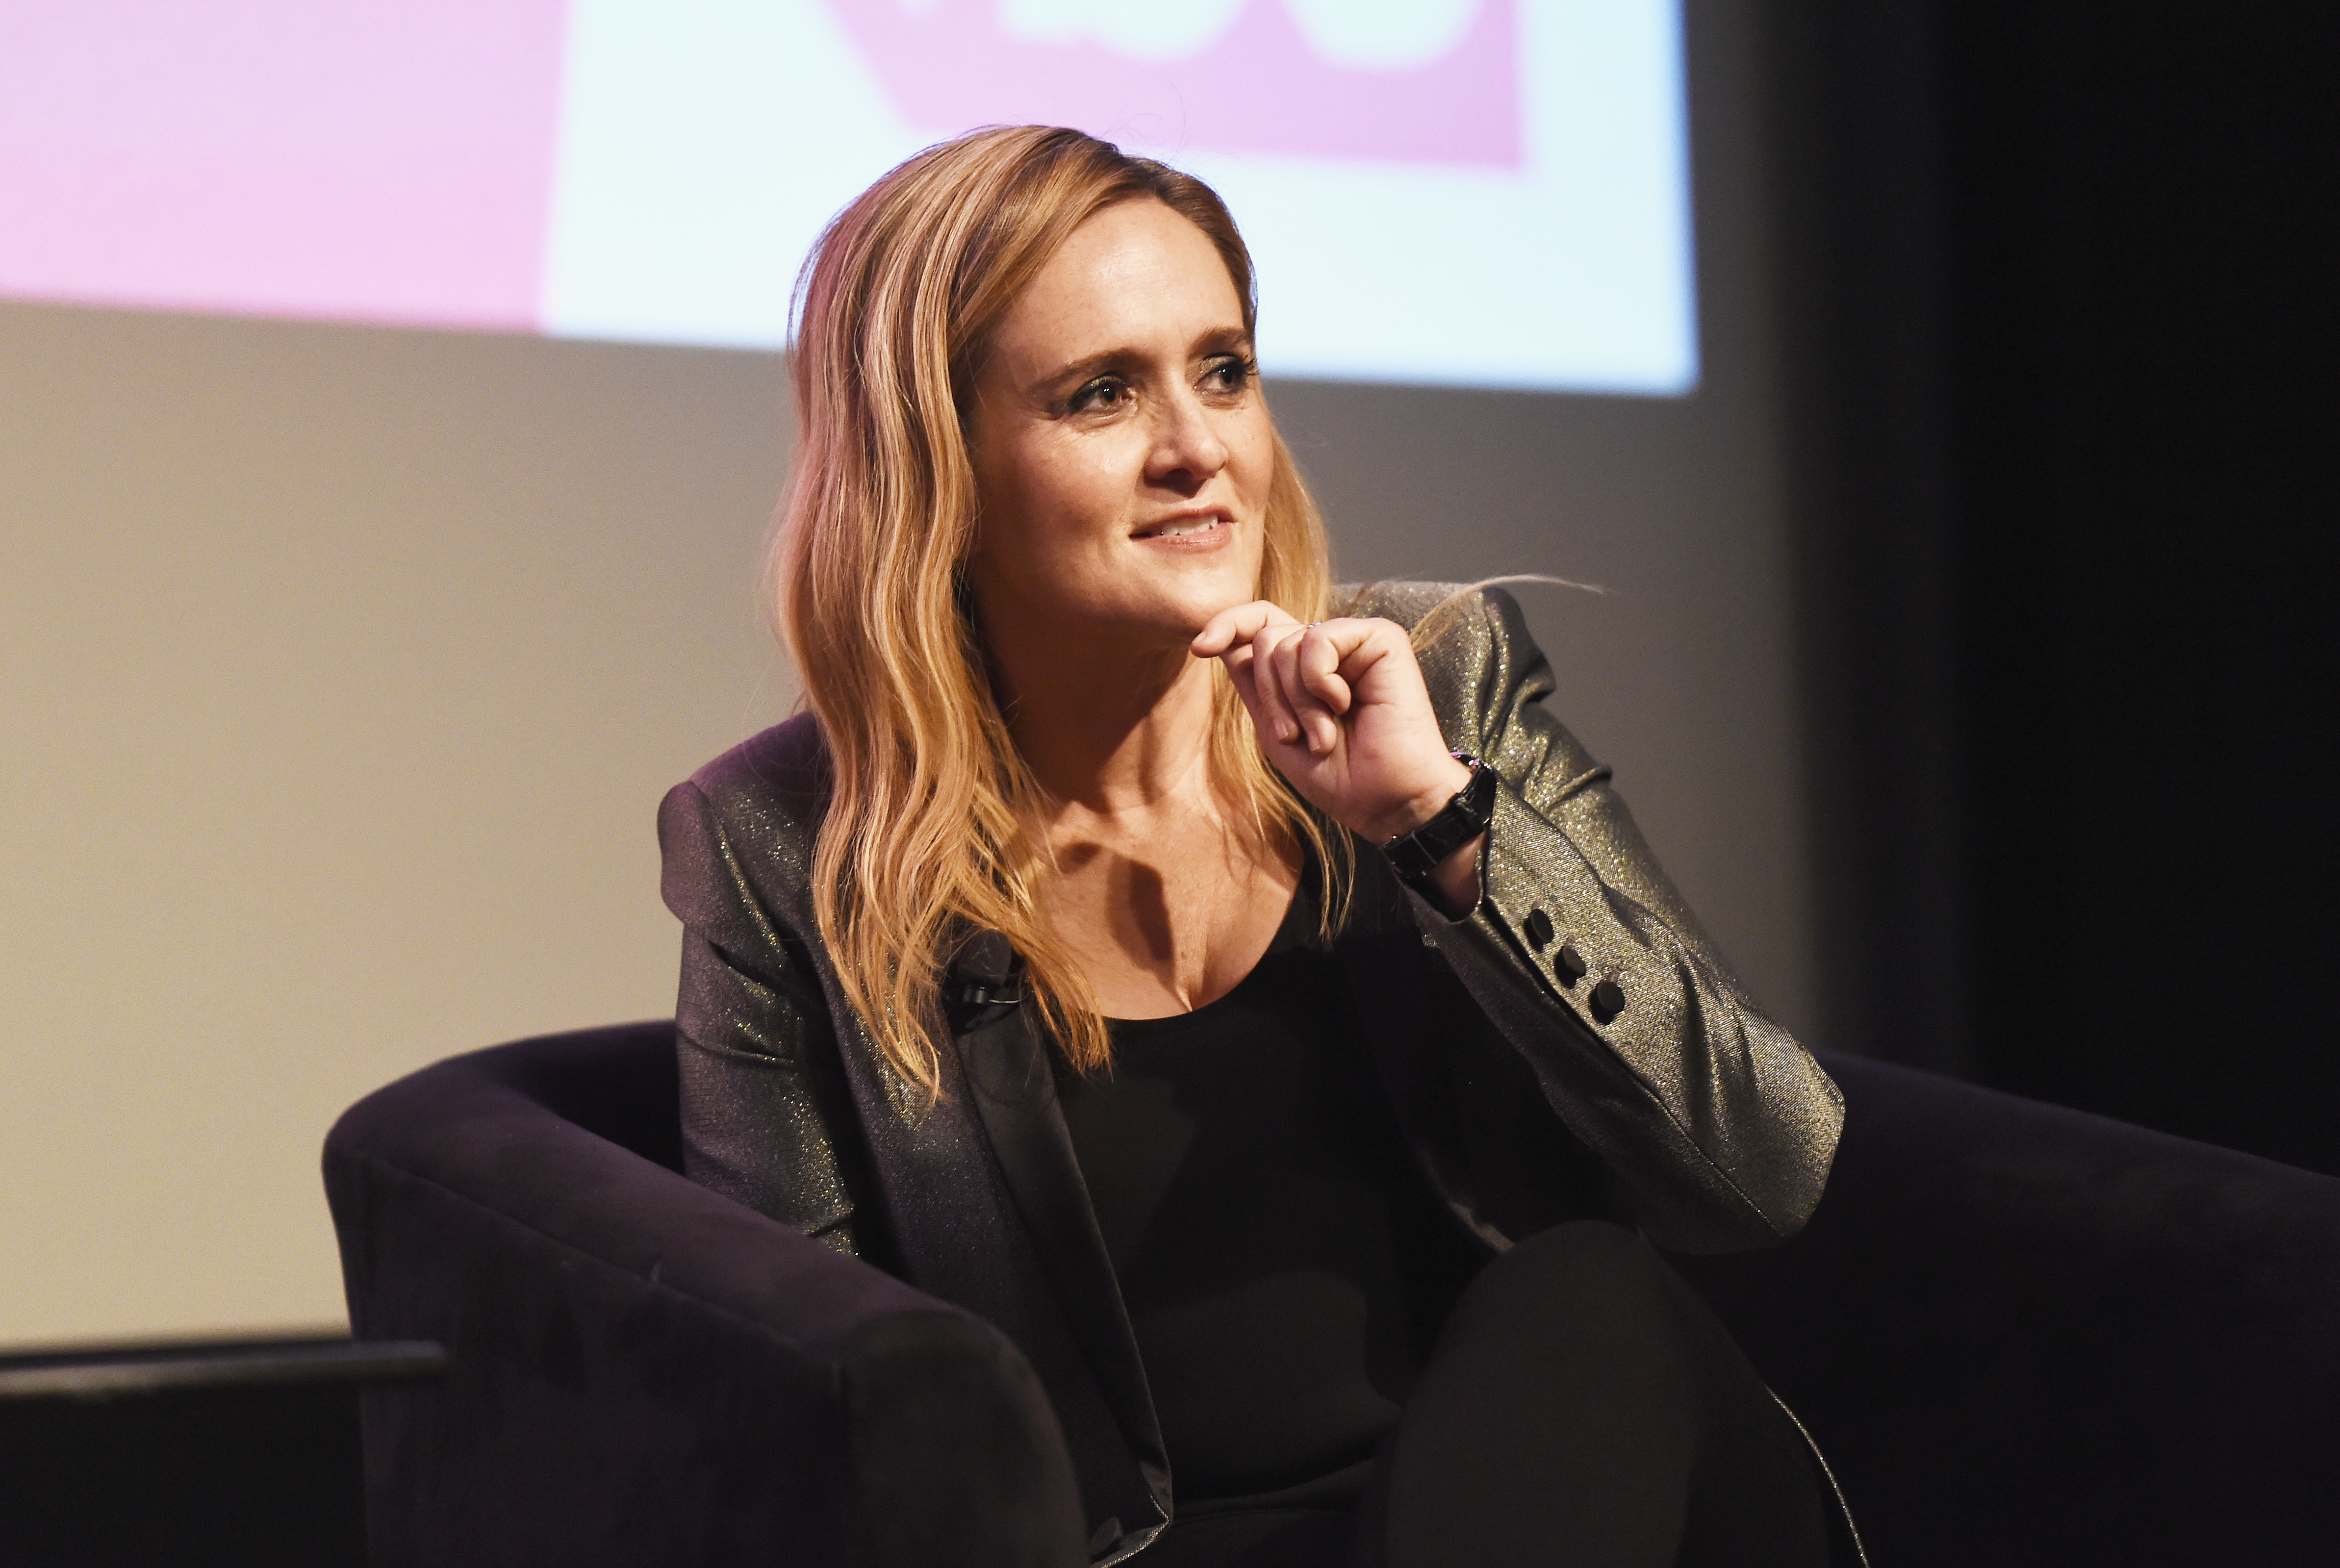 Samantha Bee attends TBS'  Full Frontal With Samantha Bee  FYC Event at the Writers Guild Theater on May 24, 2018 in Beverly Hills, California.